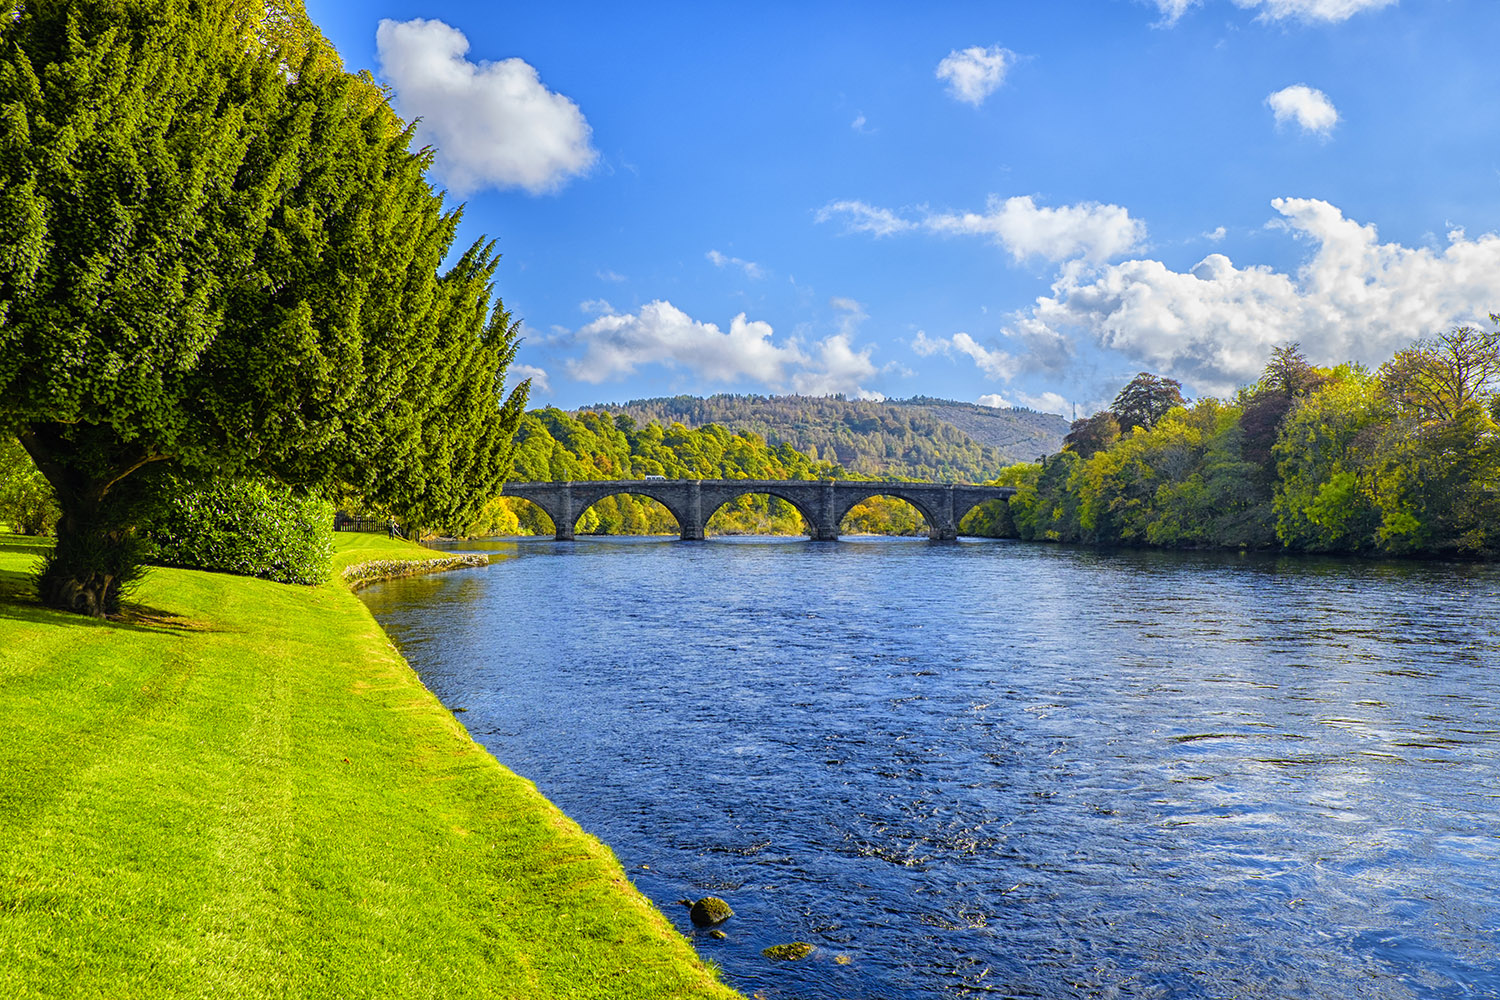 The River Tay in Dunkeld is the longest river in Scotland, visit this on a bespoke private tour of Scotland